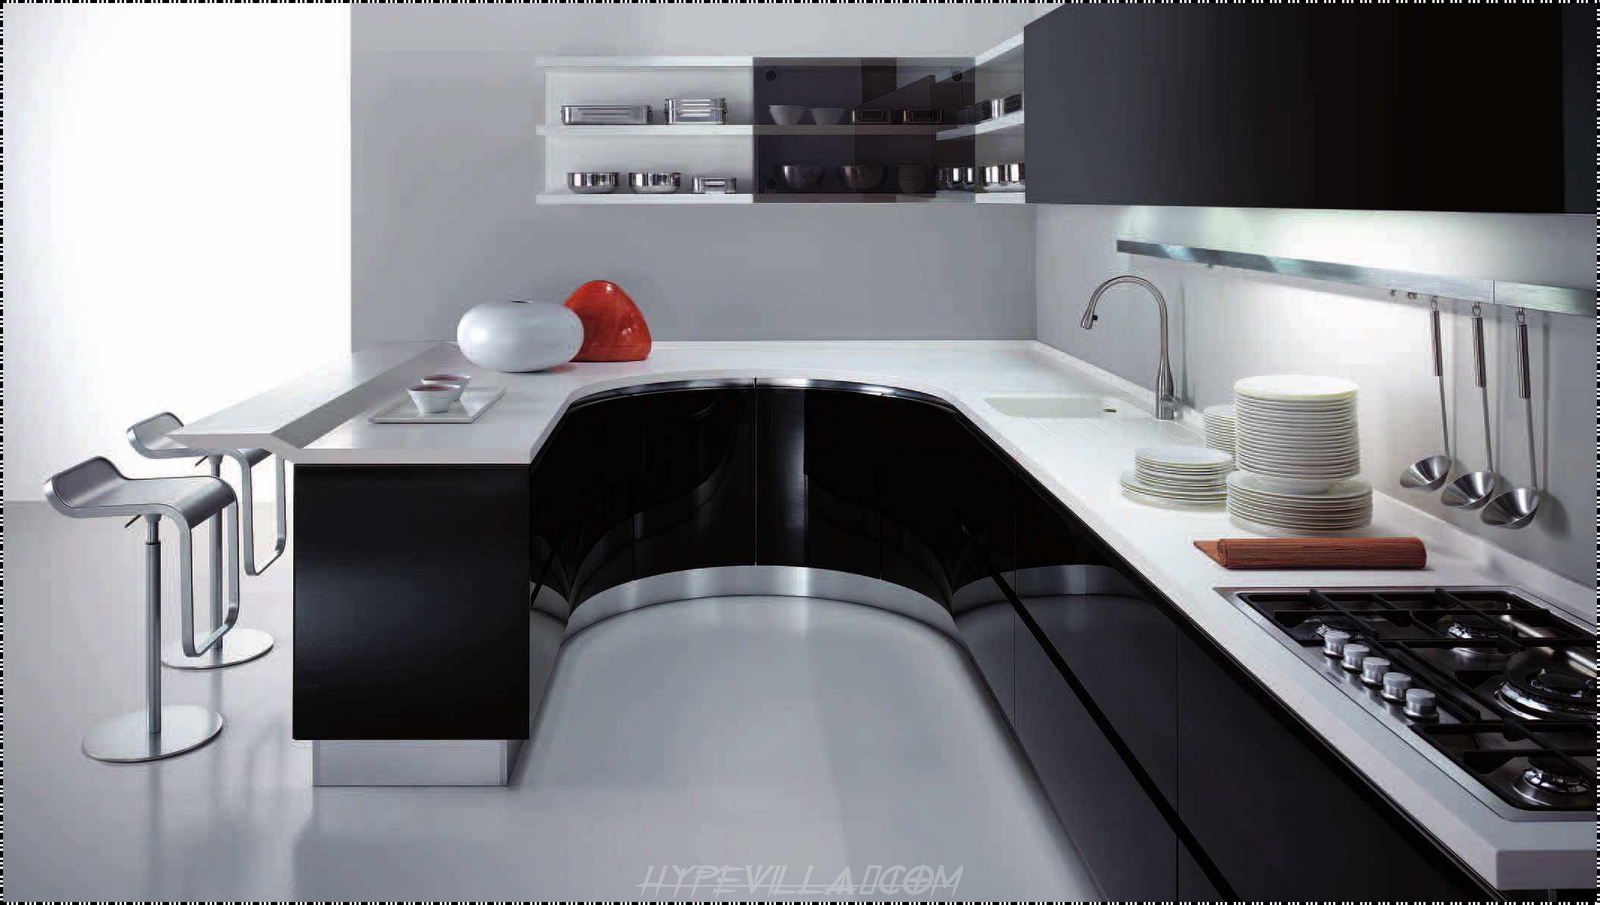 The best kitchen design in the world for Best kitchen designs images